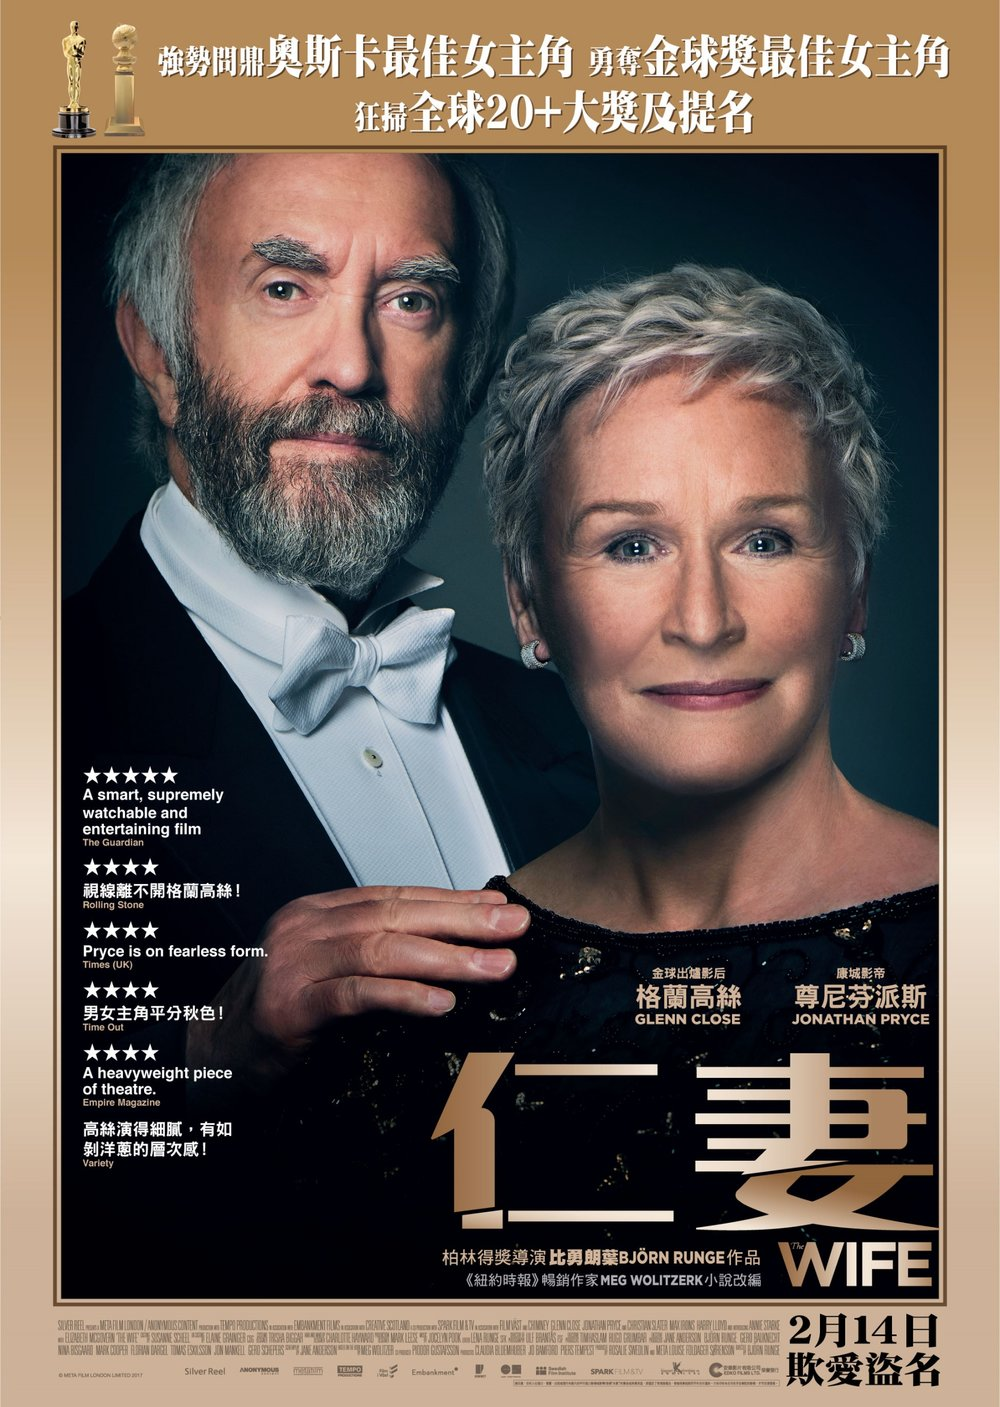 20190130_TheWife_Poster.jpg